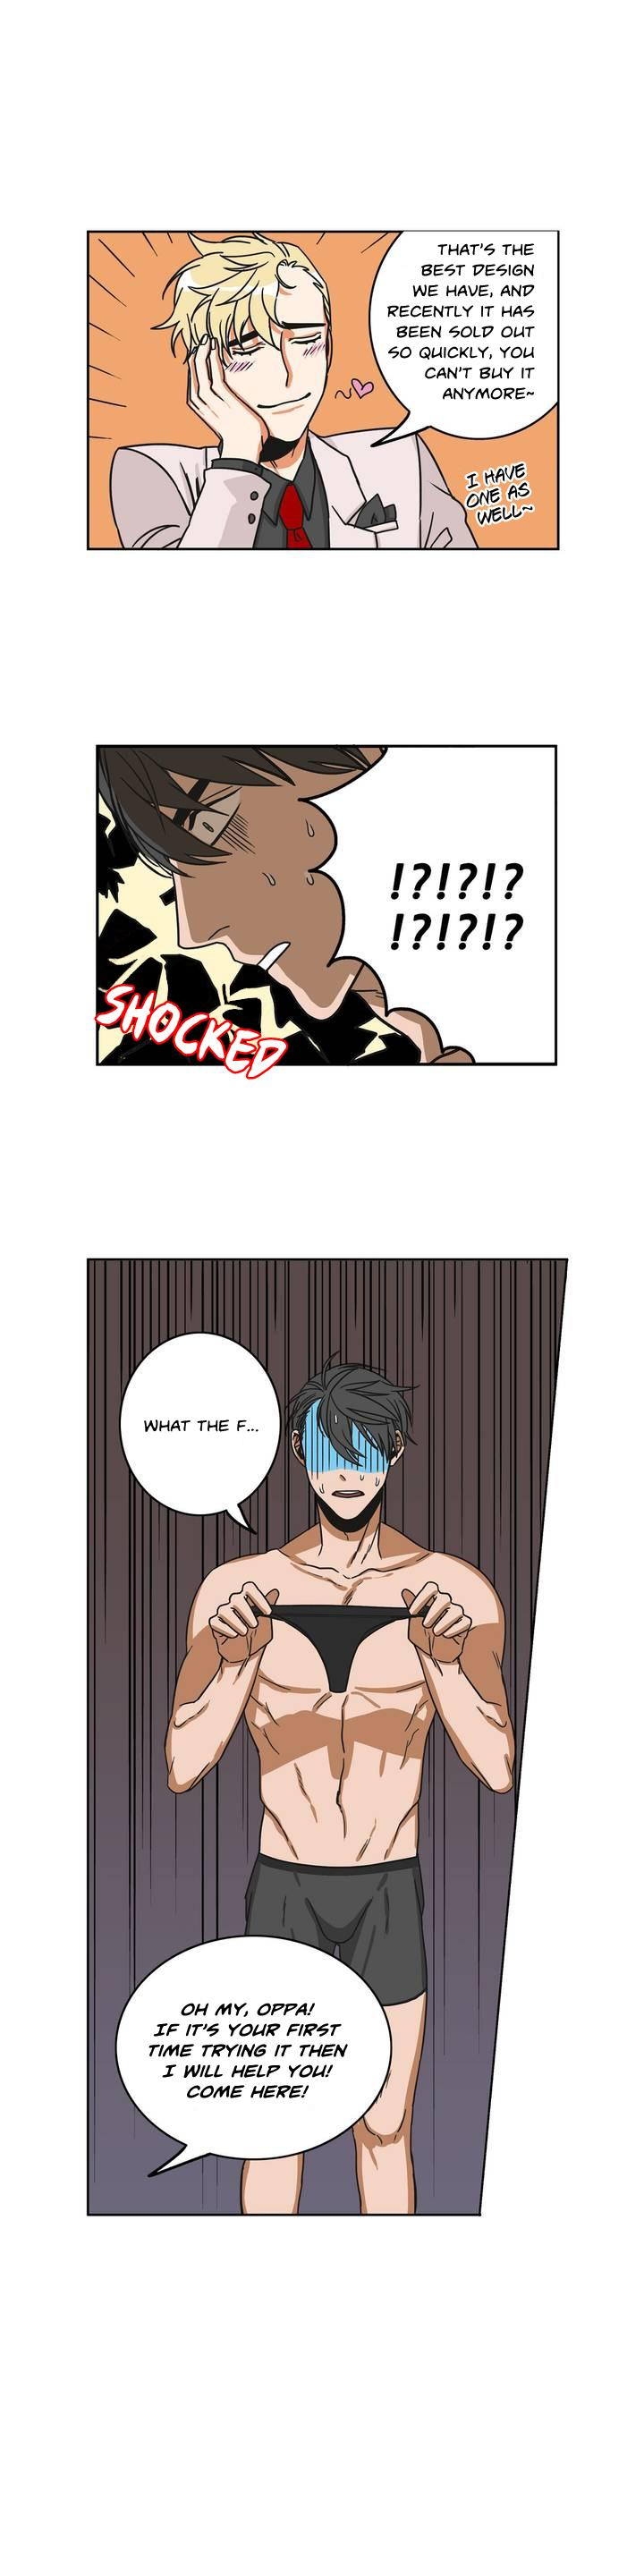 Undercover - Chapter 3